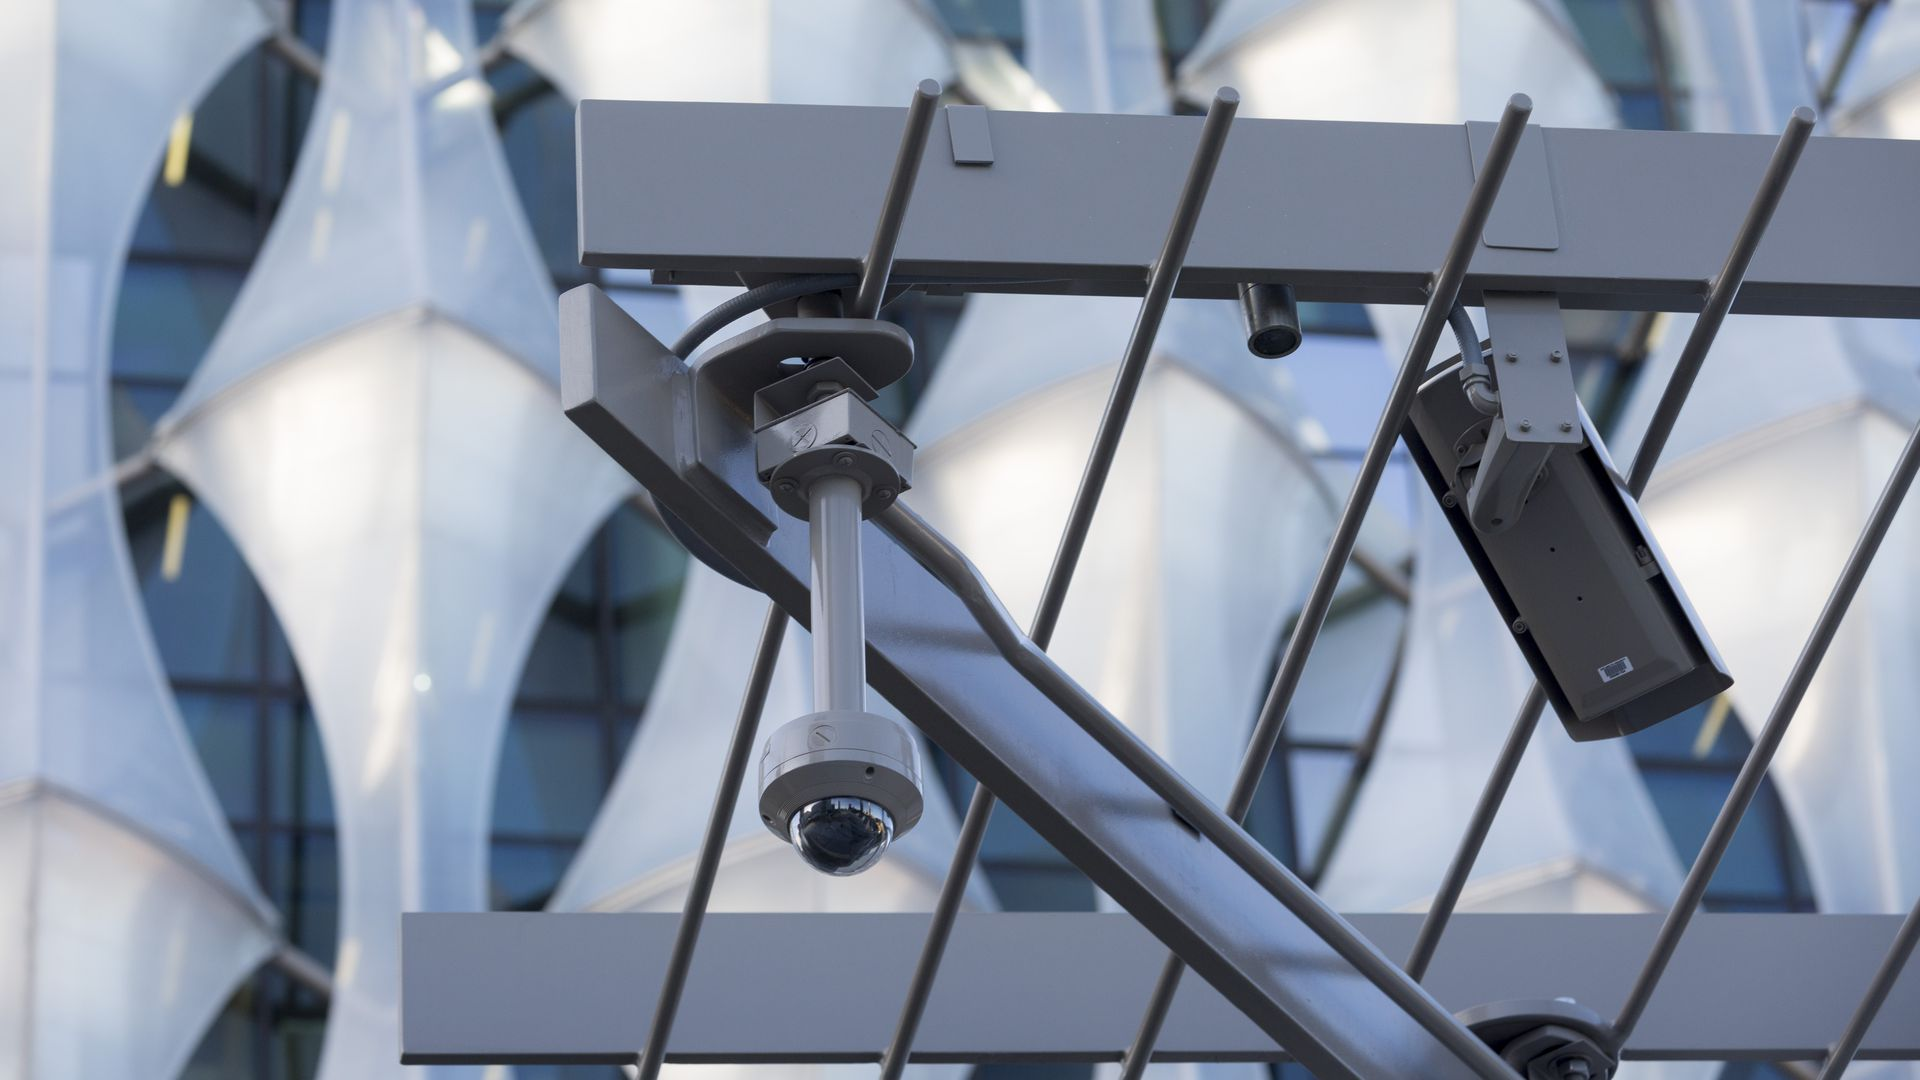 A CCTV camera on the new U.S. Embassy in London